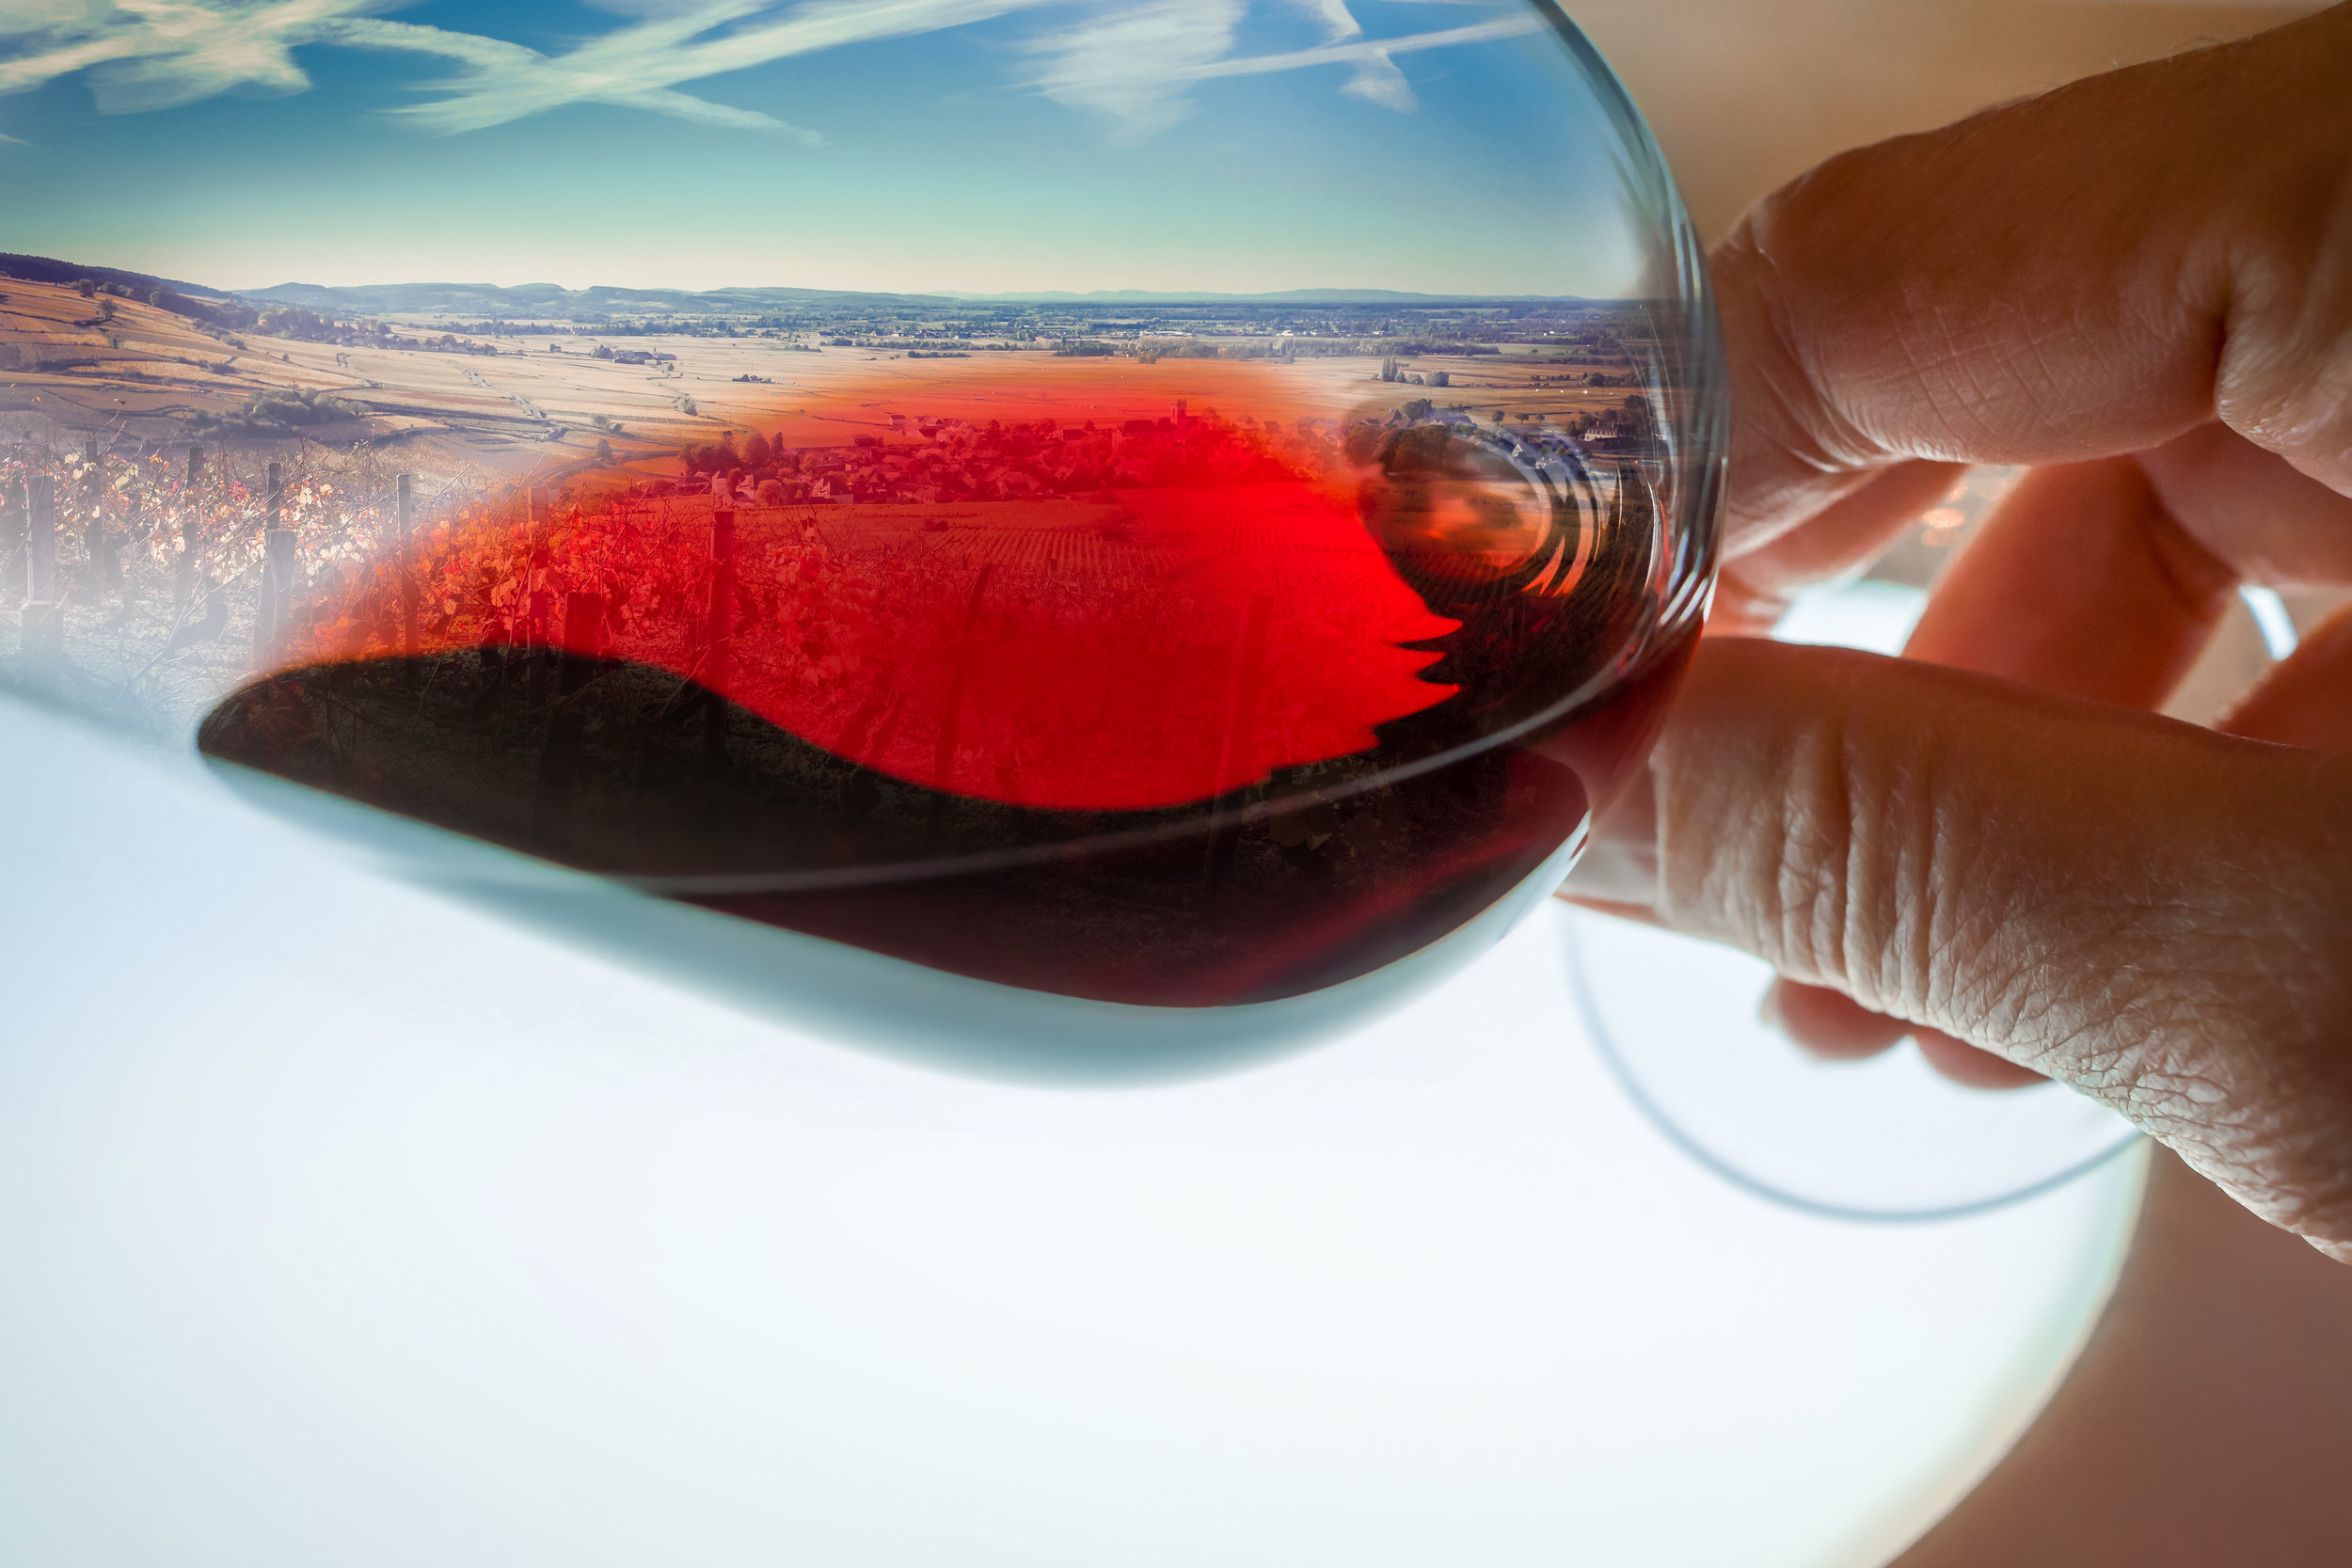 What is the sense of place wine captures and creates?